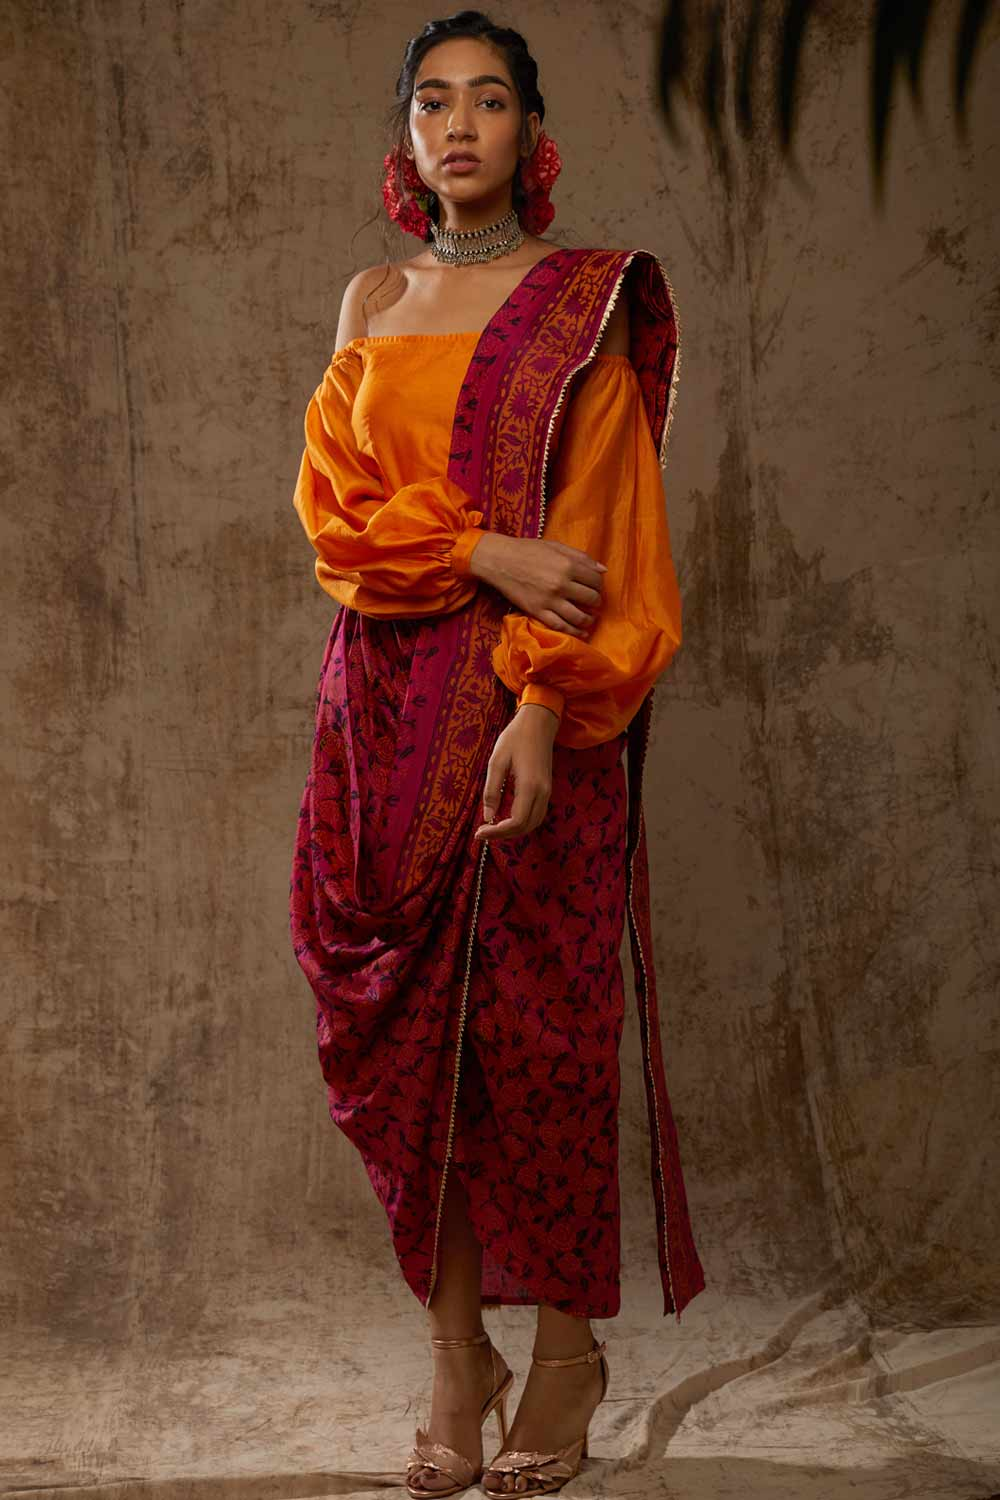 Block Printed Marigold Saree Dress - Riviera Closet